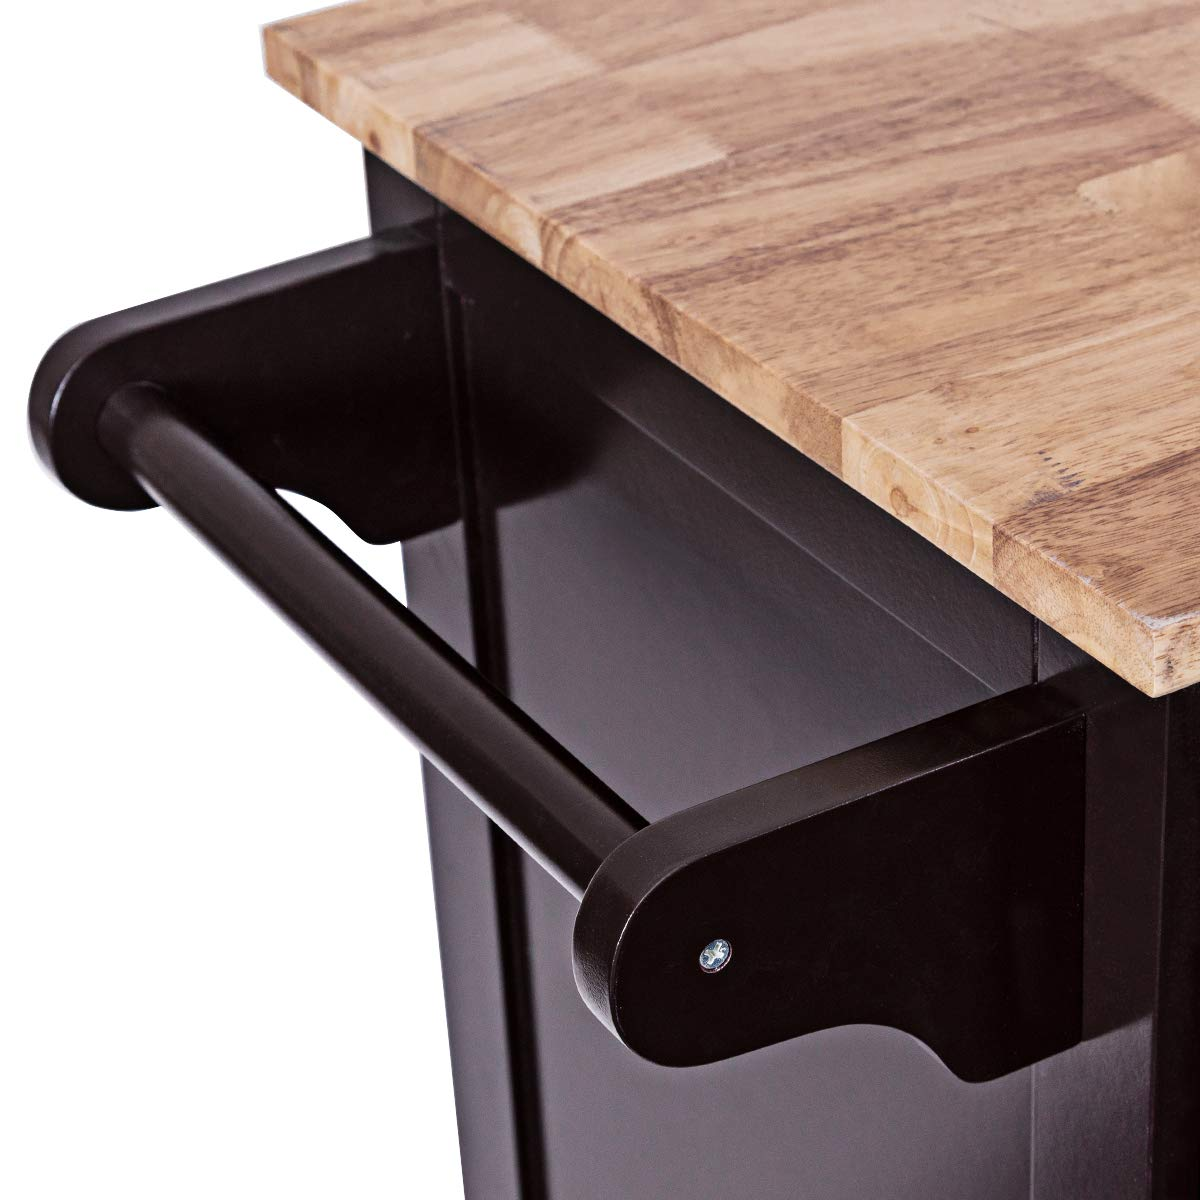 Giantex Kitchen Island Cart Rolling Storage Trolley Cart Home and Restaurant Serving Utility Cart with Drawers,Cabinet, Towel Rack and Wood Top by Giantex (Image #8)